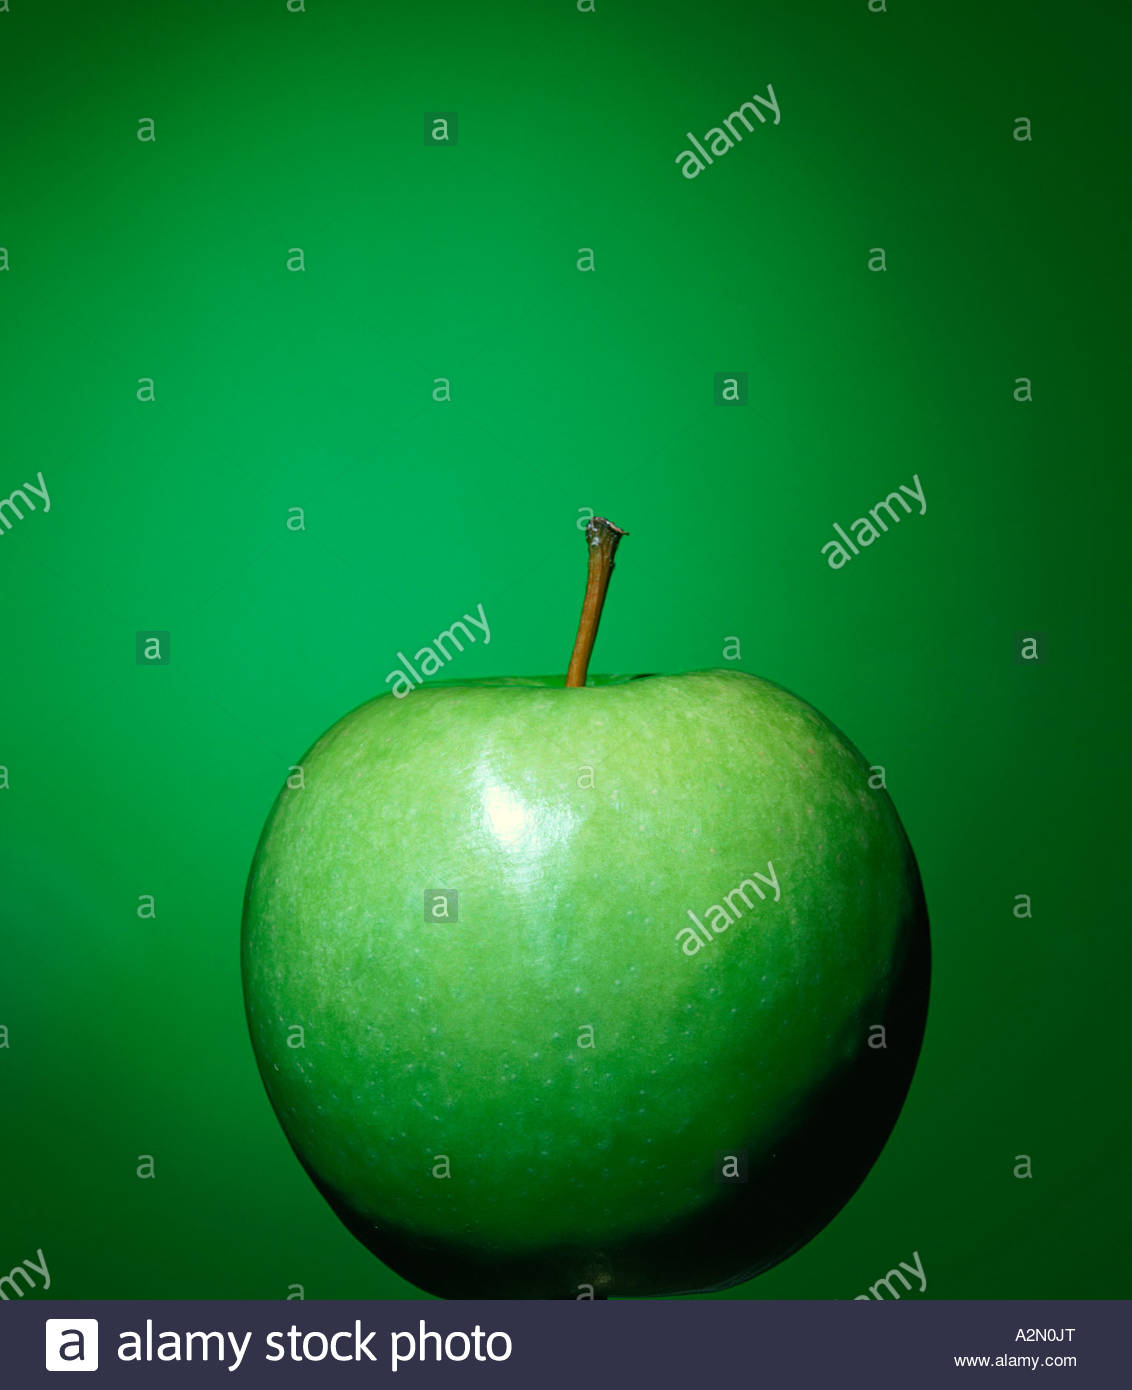 Close up of a green apple against a vivid green background. - Stock Image